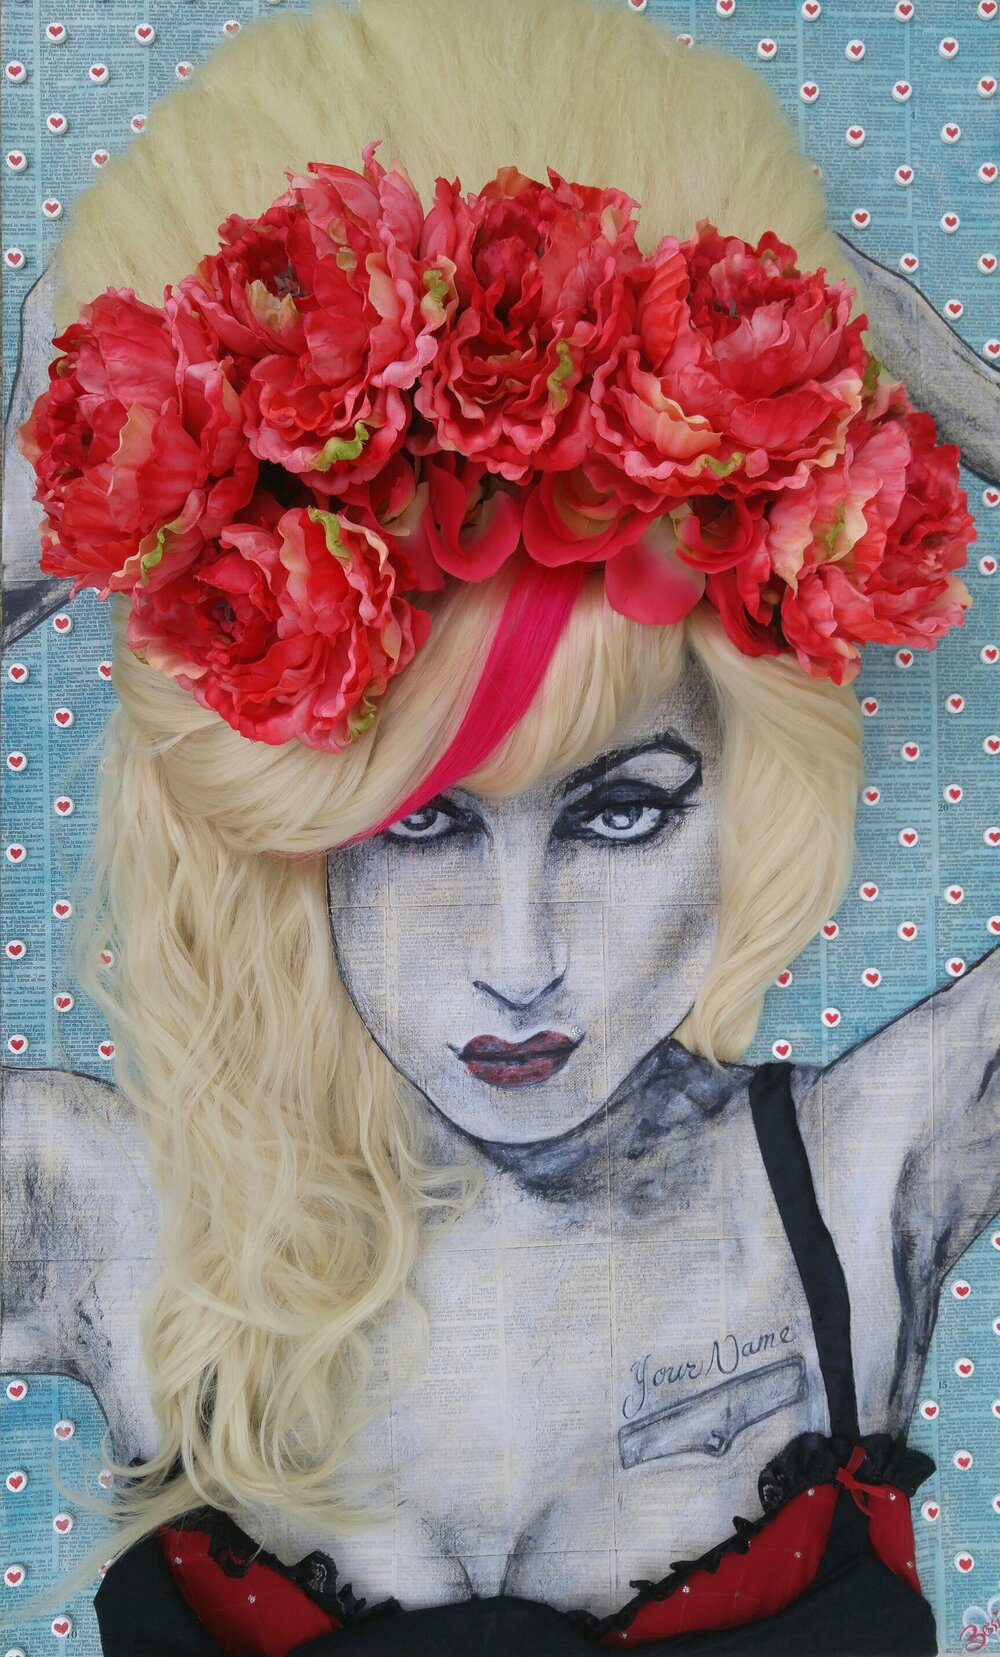 """Loves the Drug and I need to Score"",  22in. x 36in.   Mixed Media: Paper mached canvas with pills painted with small hearts on them. Acrylic paint for portrait. Hair extensions for hair. Large artificial flowers for head piece. False lashes for eyelashes. Bead for Monroe piercing. Fabric to make lingerie."